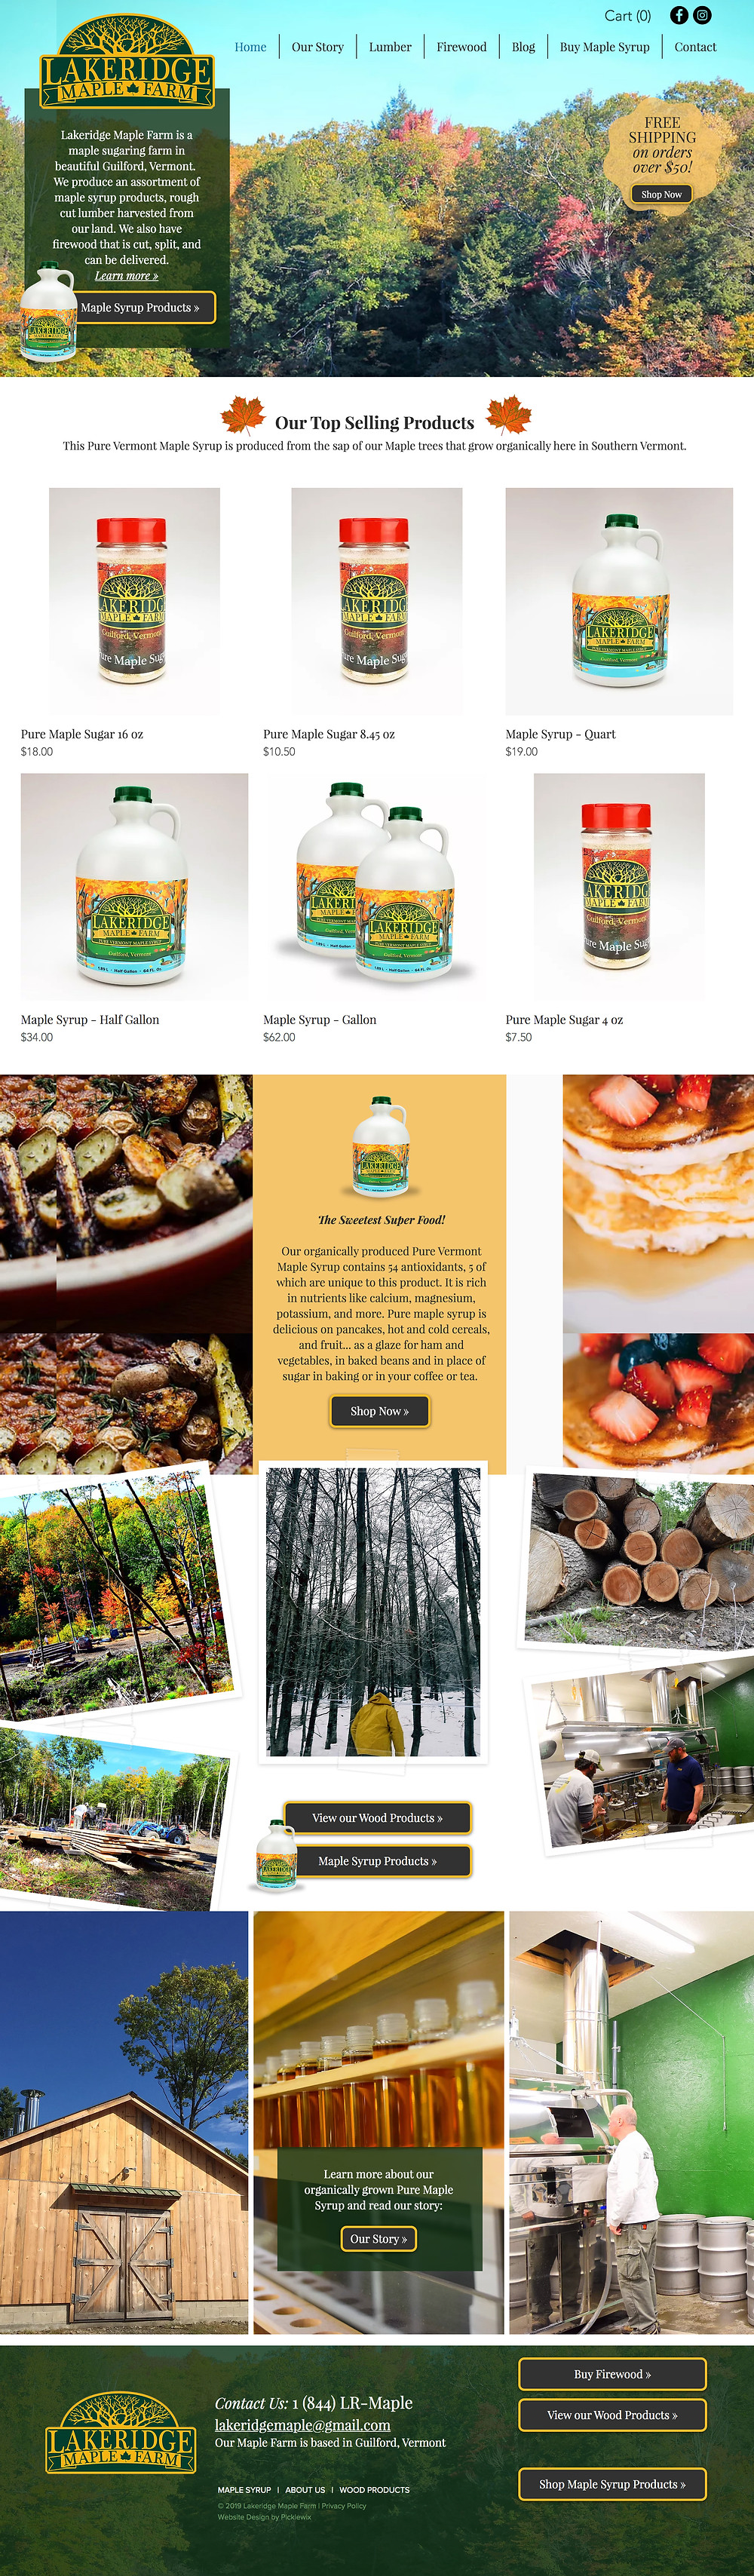 Garden Website Template for Maple Syrup Farm in Guilford, Vermont